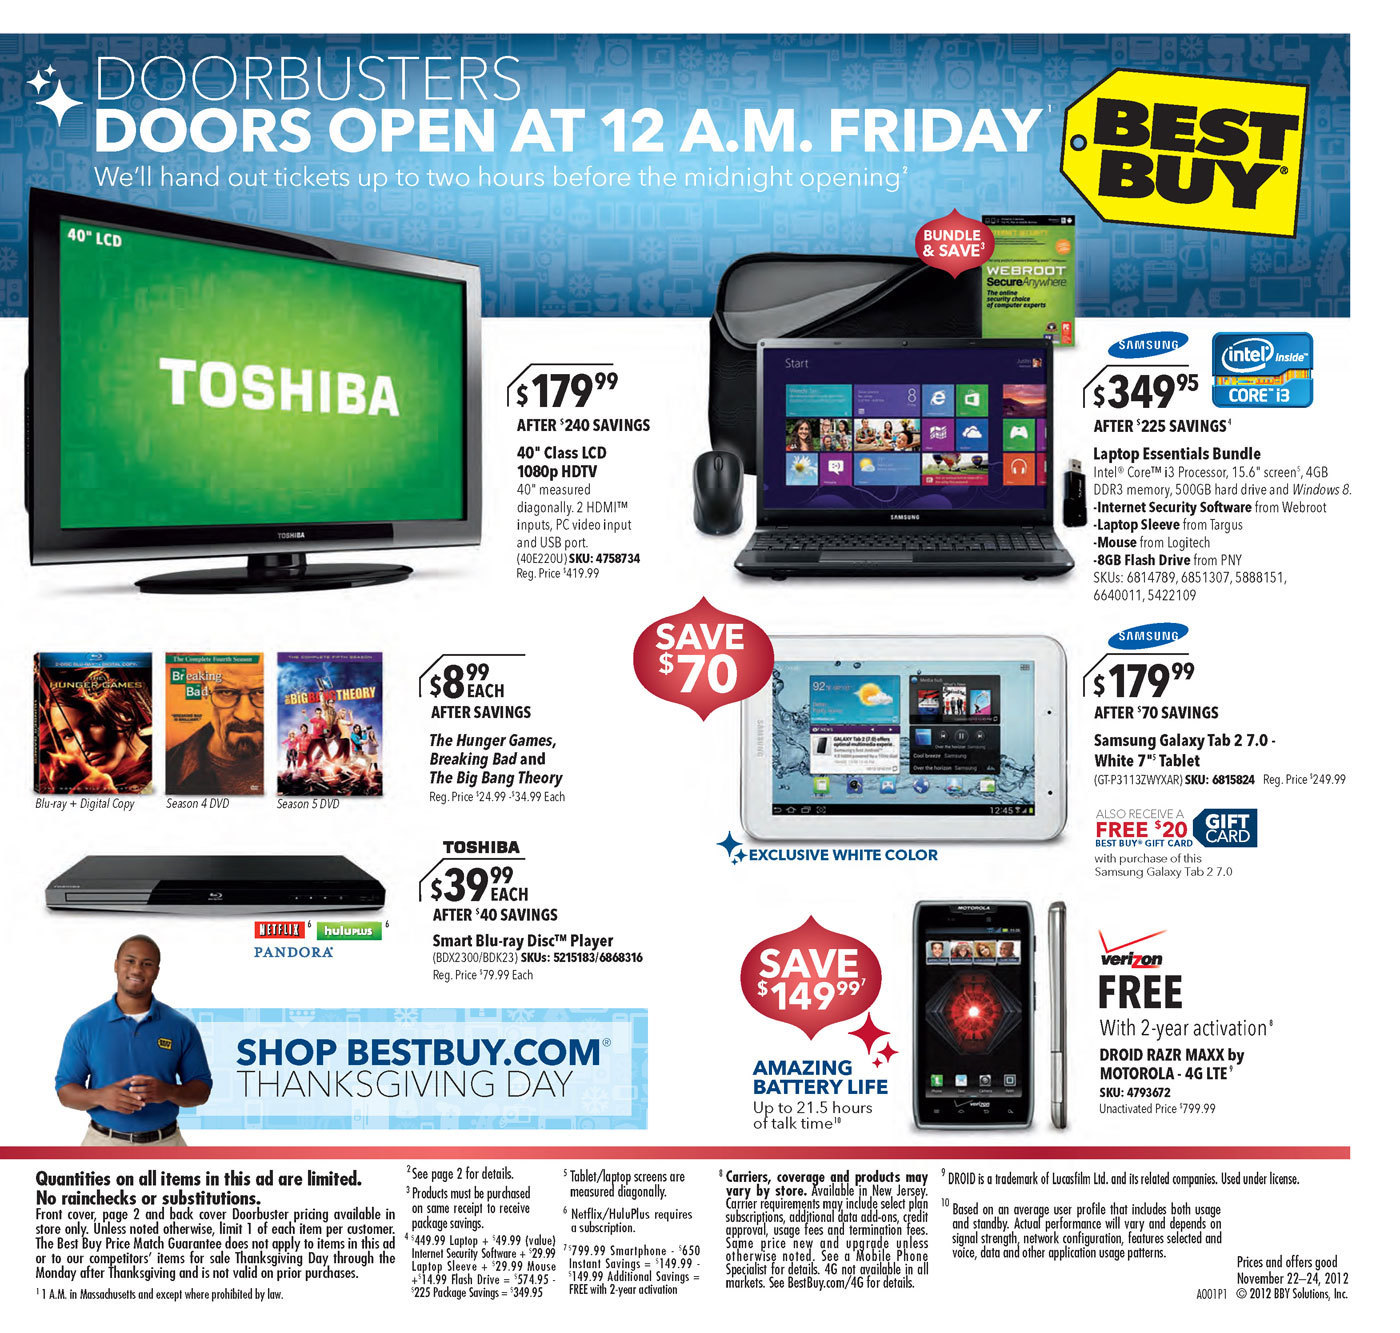 Dollar General Black Friday 2012 Ad